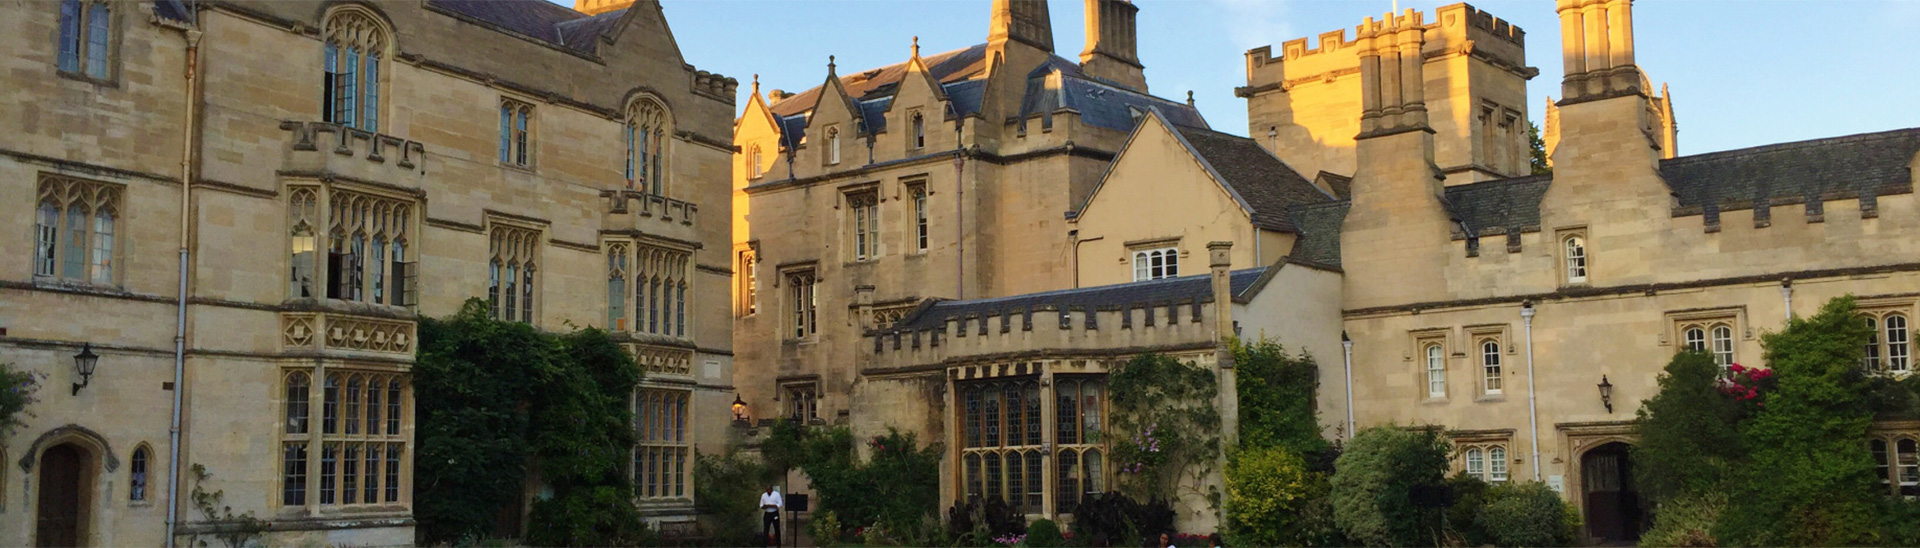 Pembroke College, home for our academic summer program students